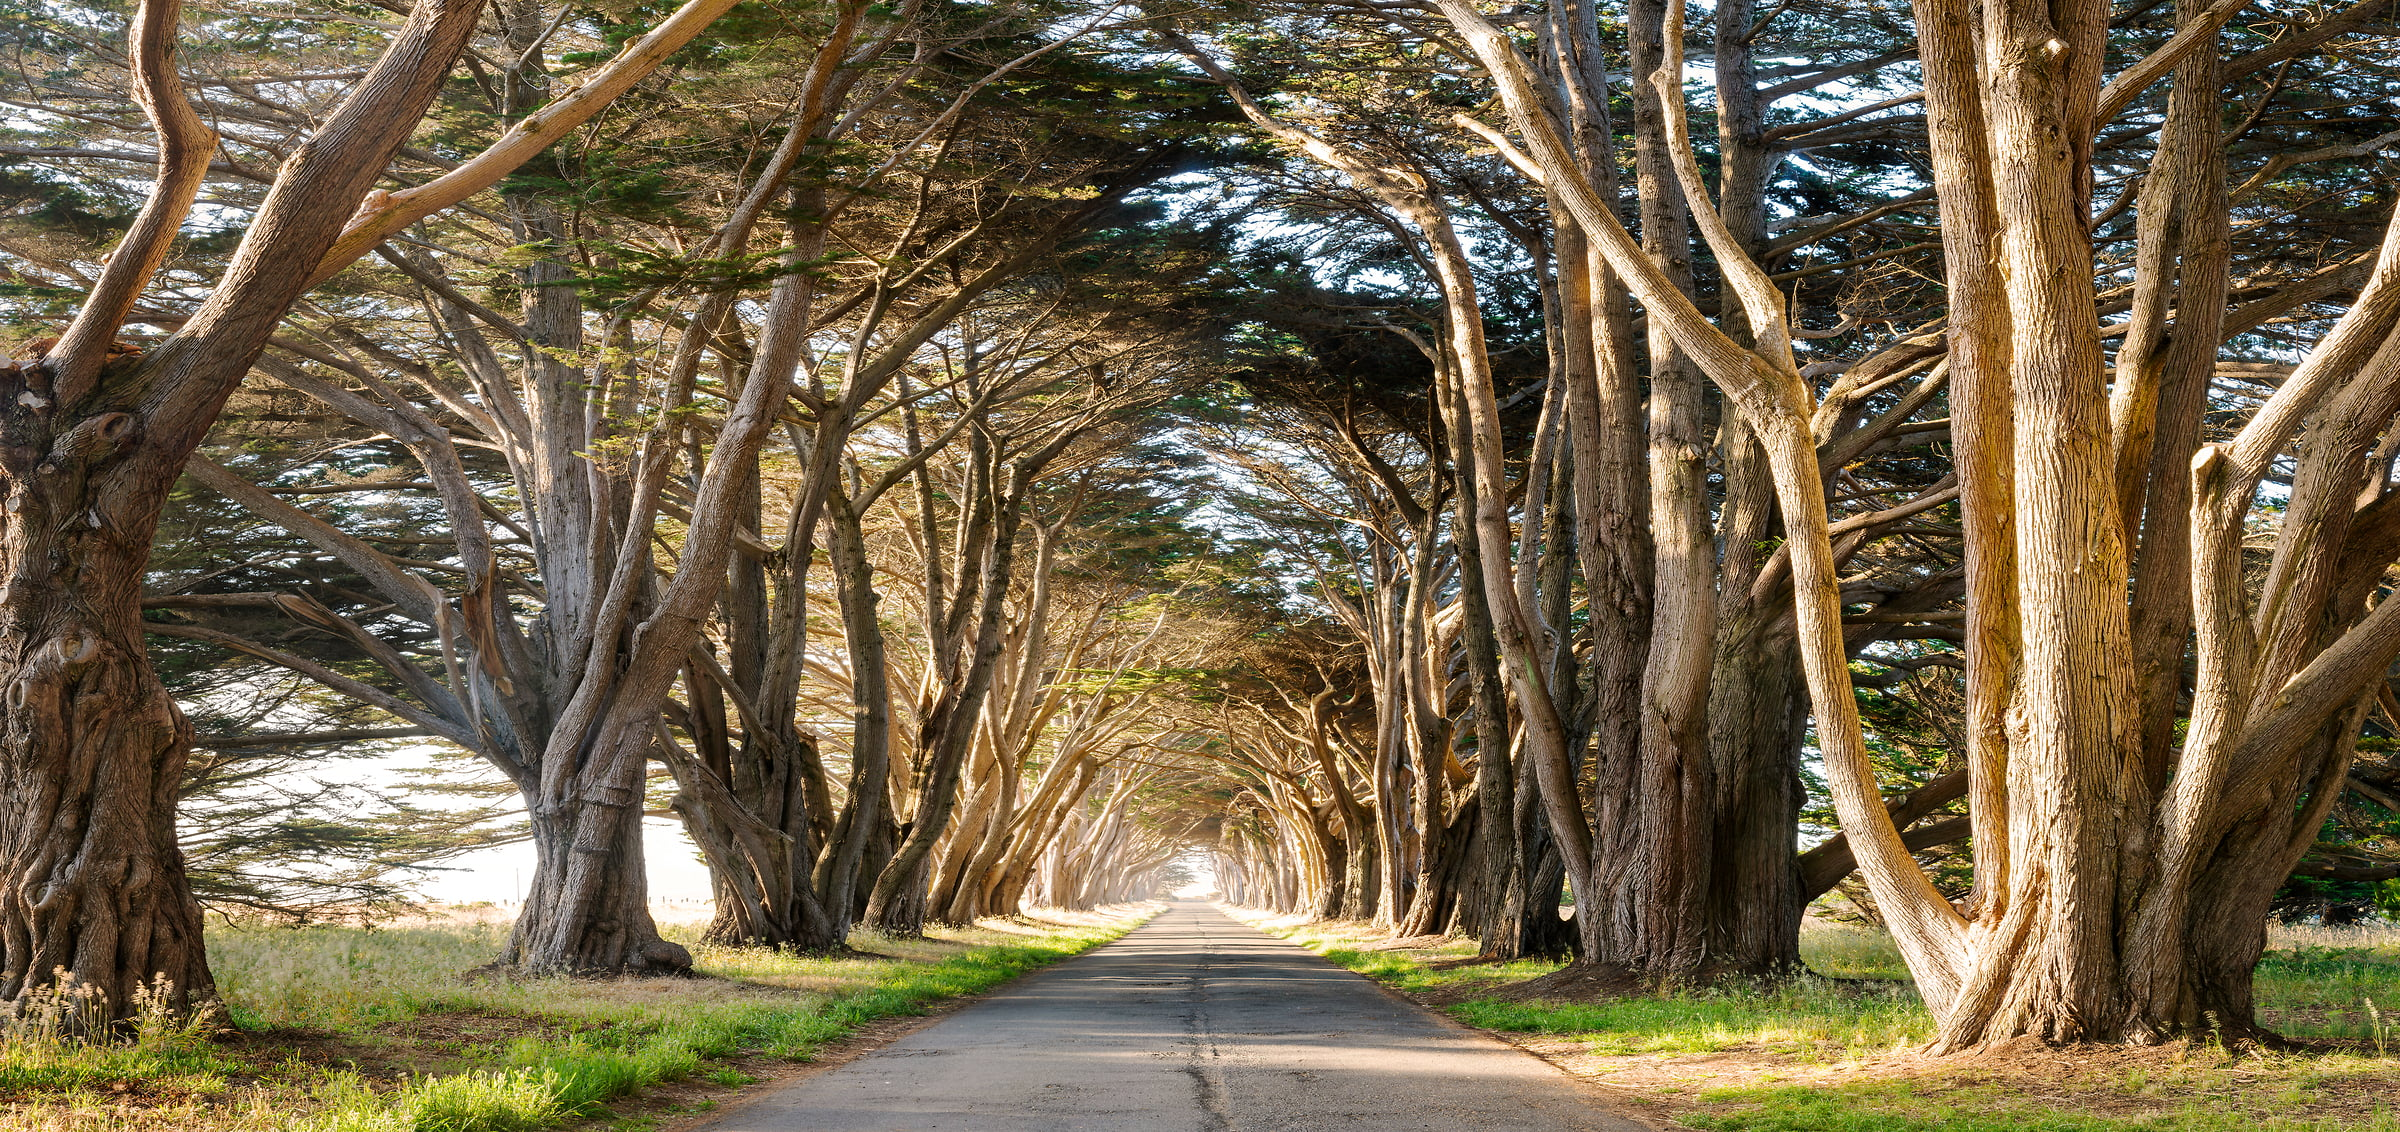 535 megapixels! A very high resolution, large-format VAST photo of a tunnel of cypress trees with a road going down the middle; fine art nature photograph created by Justin Katz in Point Reyes National Seashore, California